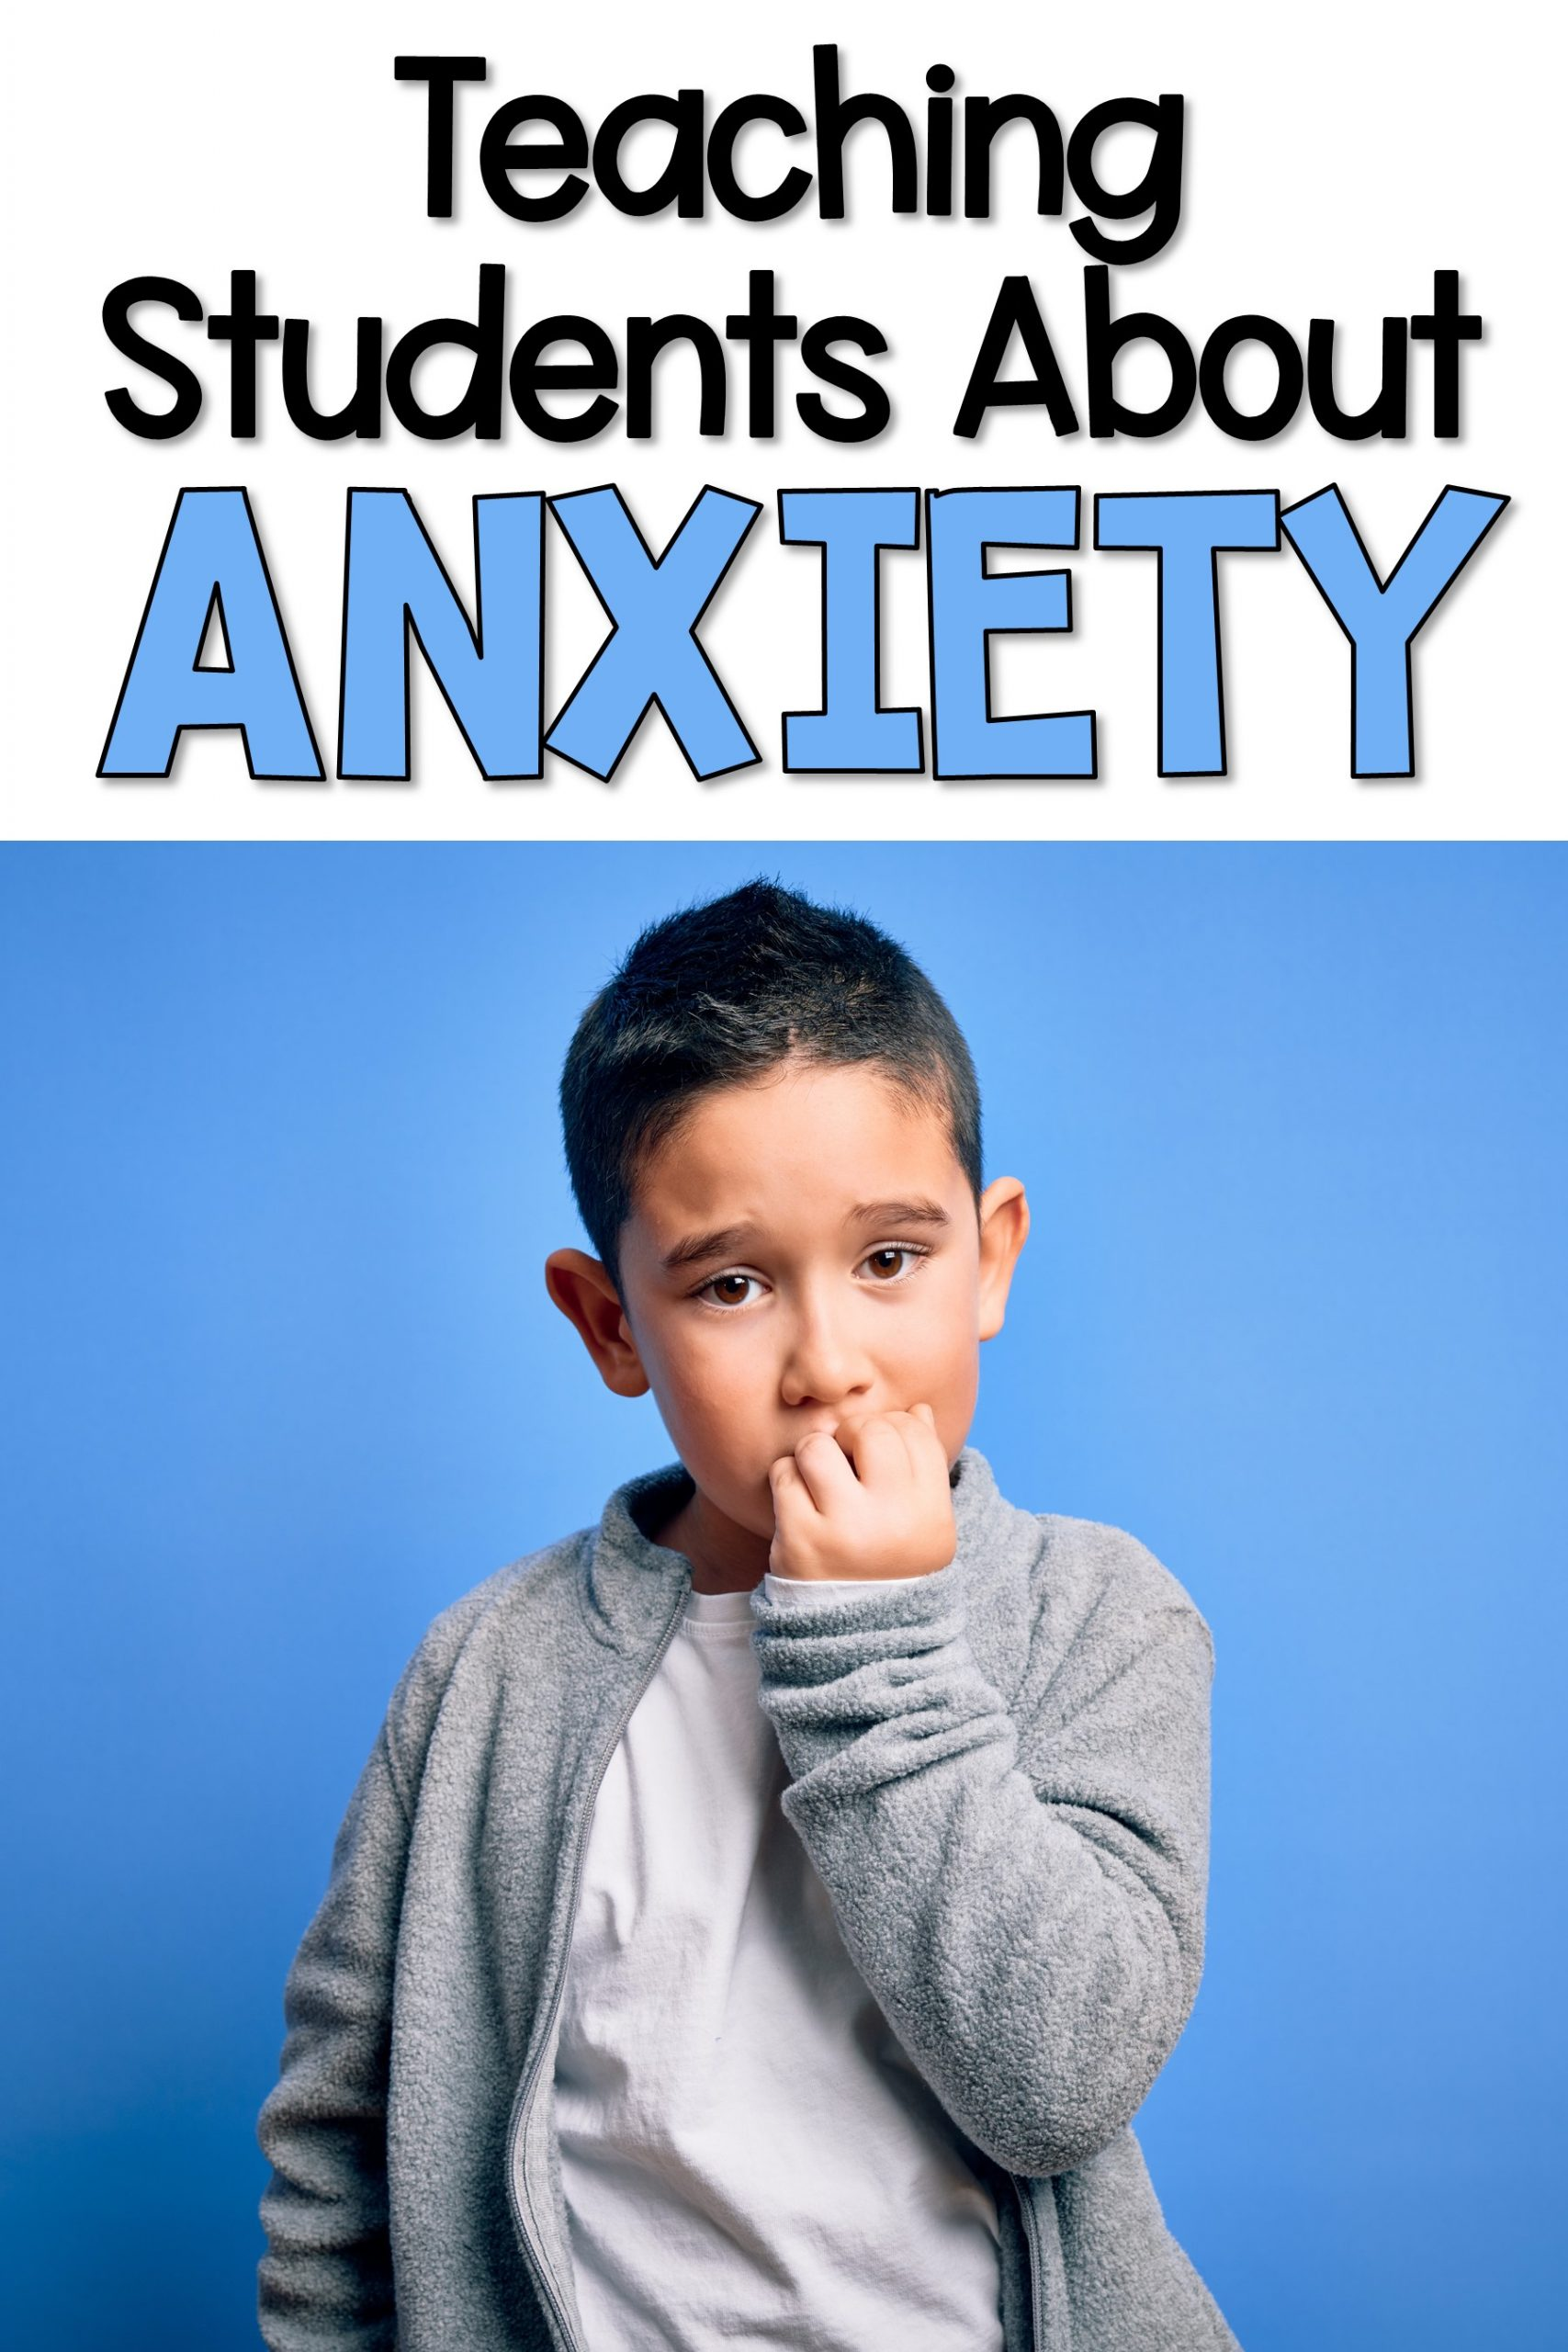 teaching students about anxiety